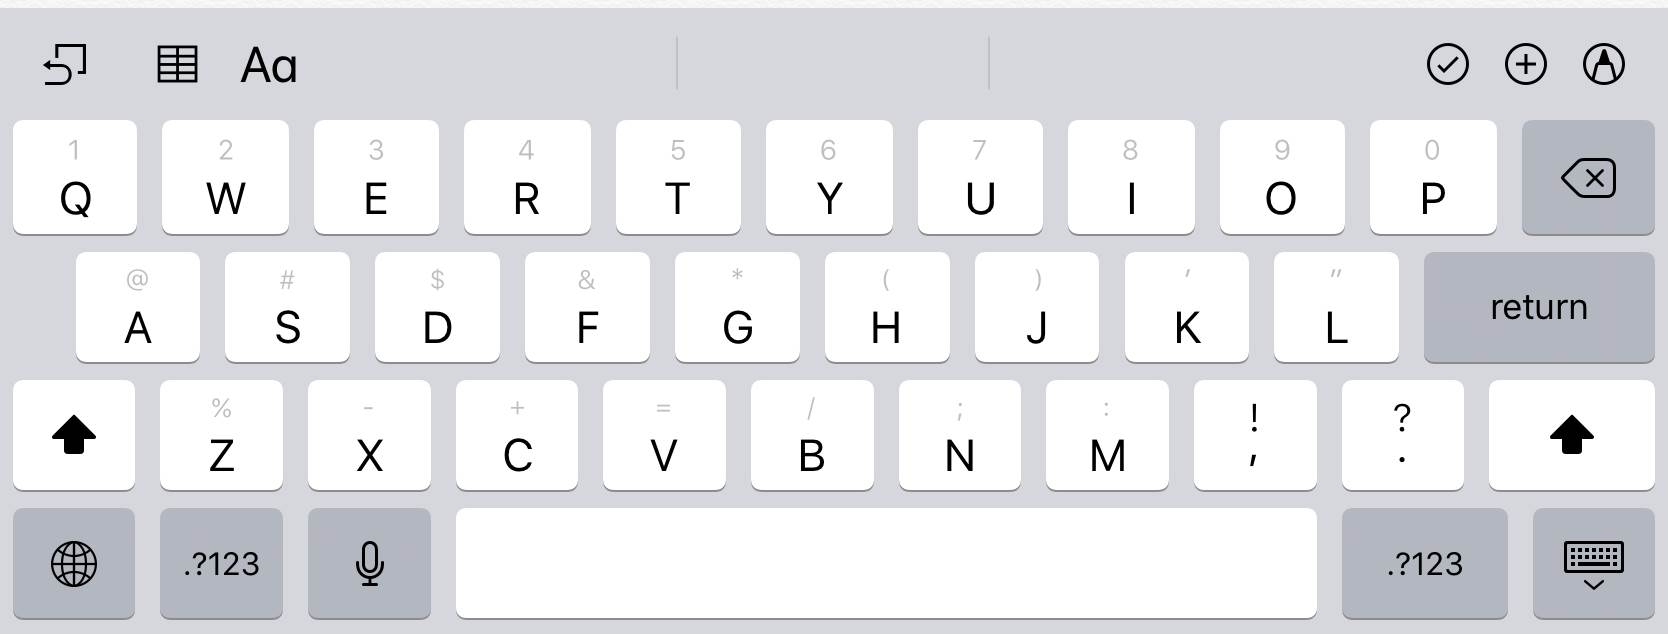 Keyboard layout change in iOS annoys users - Software - iTnews